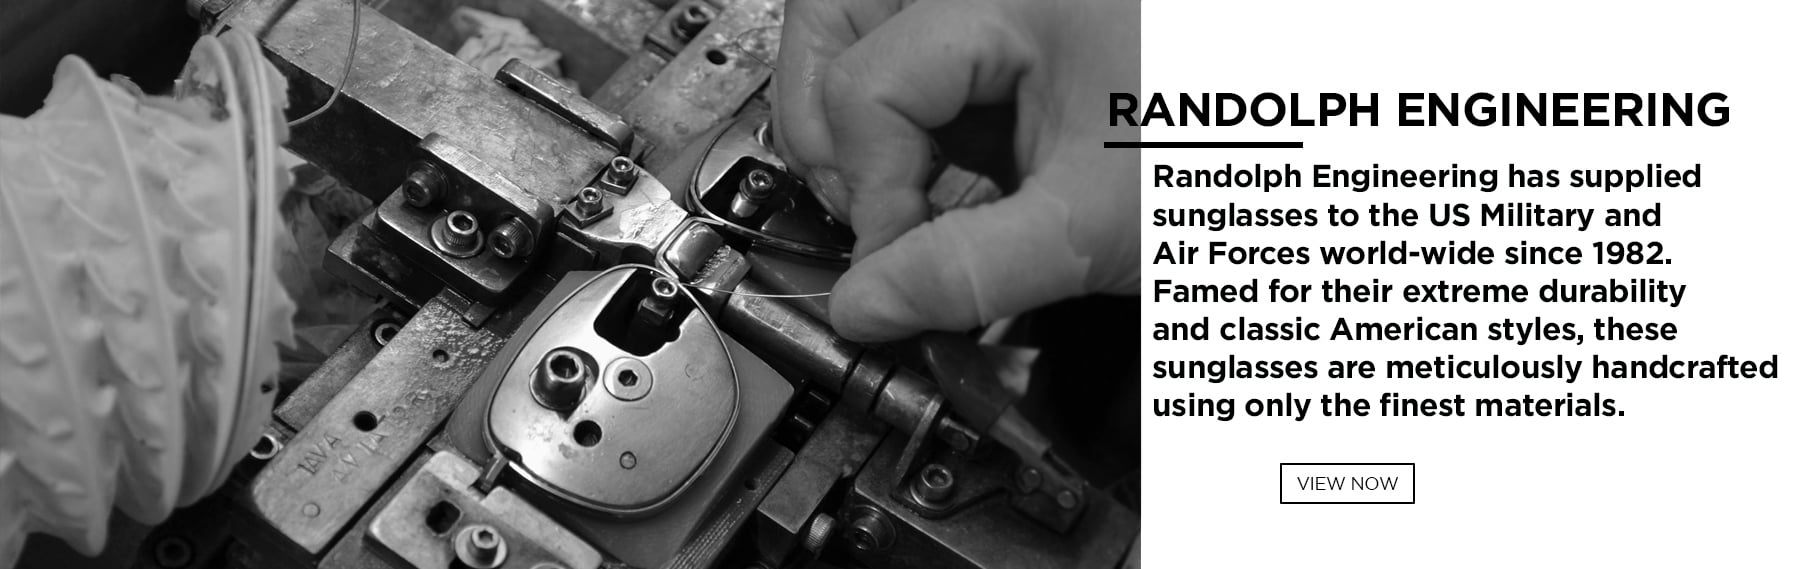 a27957fda2 Randolph Engineering Sunglasses UK Stockist- Based in London